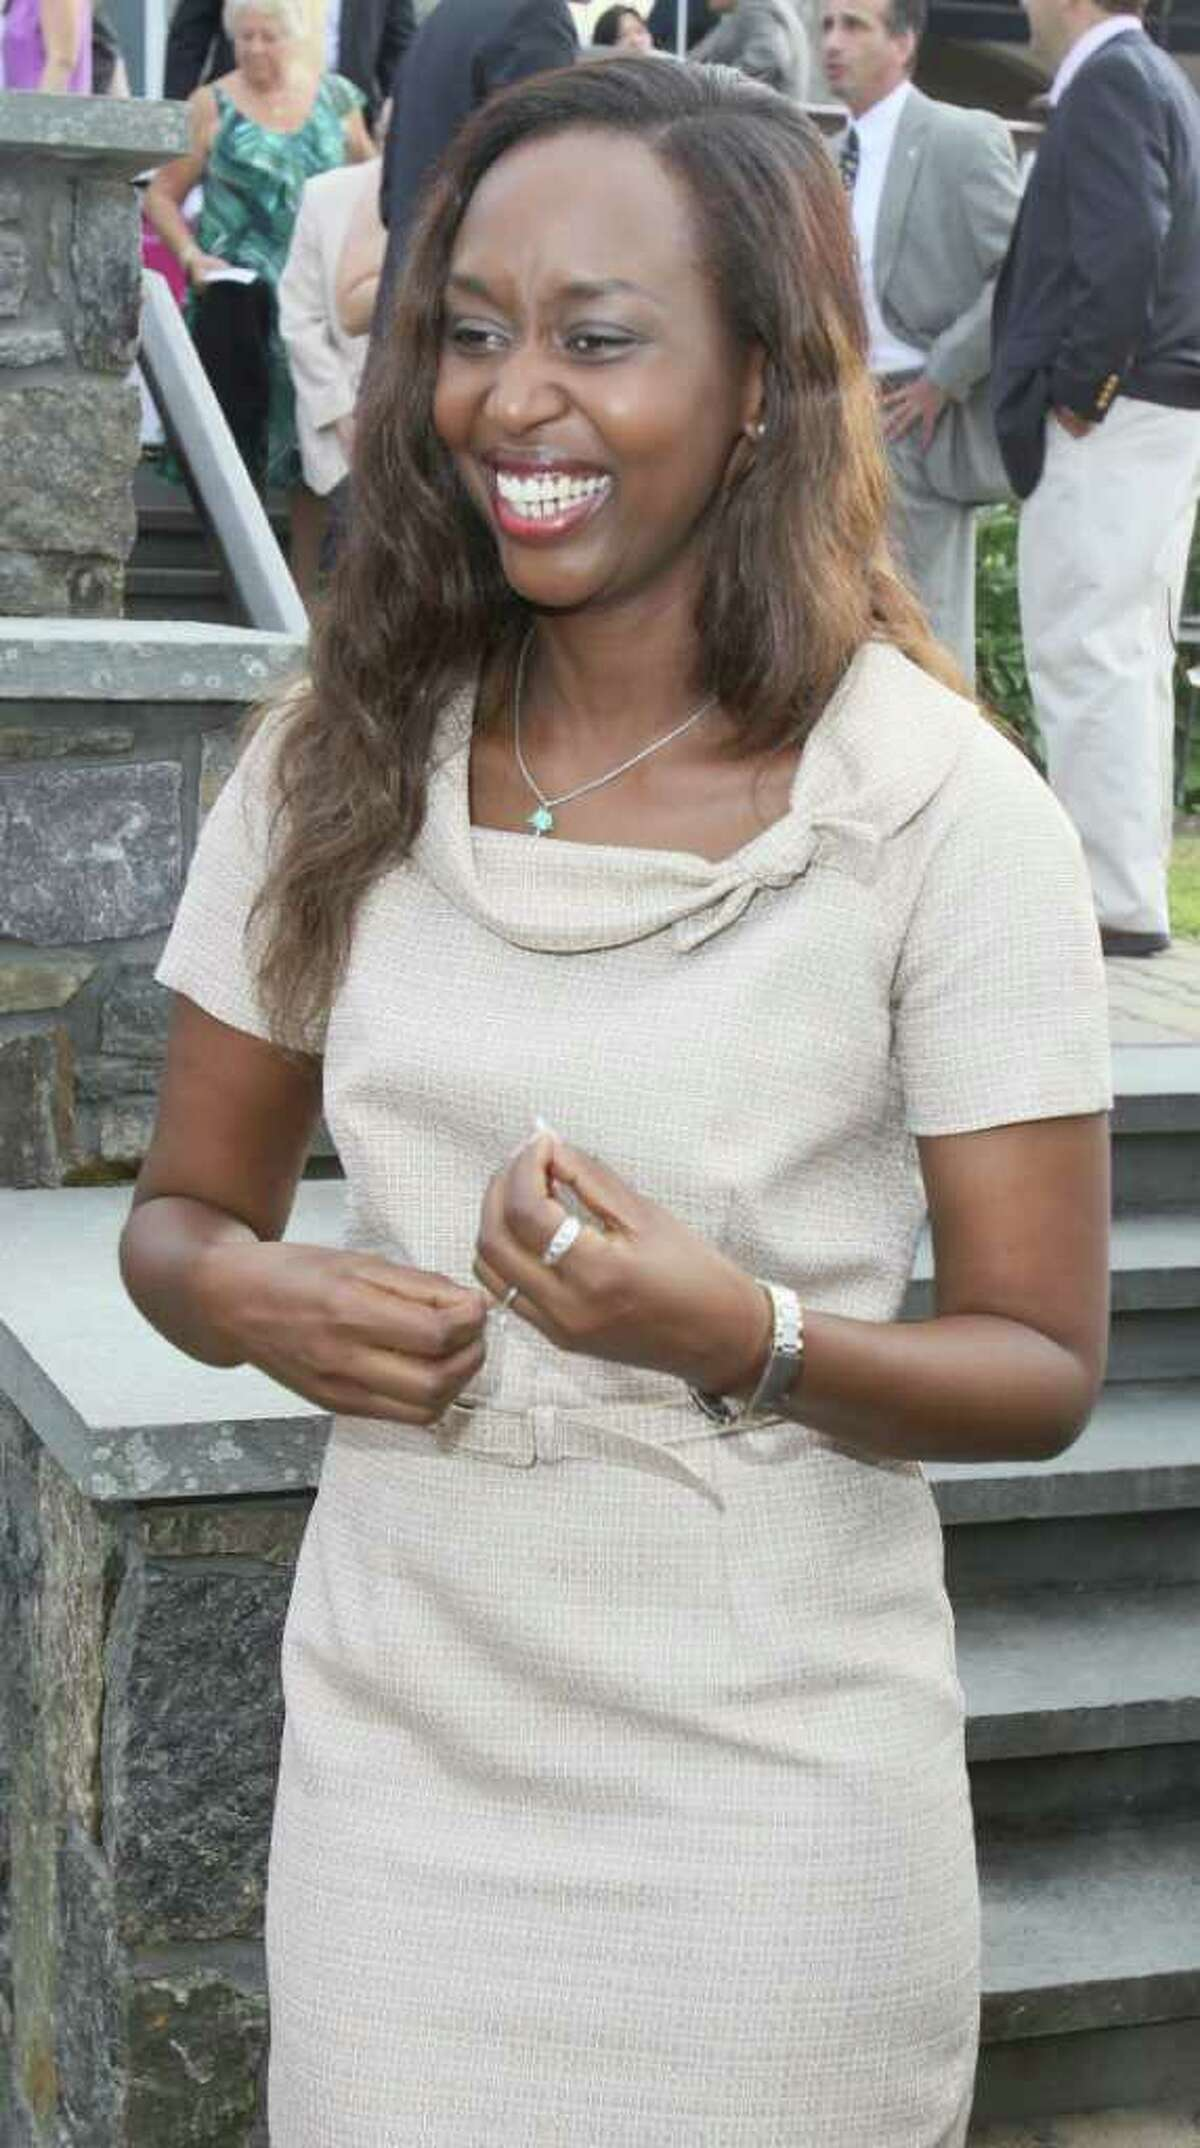 Saratoga Springs, NY - July 28, 2011 - (Photo by Joe Putrock/Special to the Times Union) - 2011 Teresian Faith, Hope and Courage Award Winner Immaculee Ilibagiza arrives at the Teresian House Foundation 21st Annual Friendraising Gala.